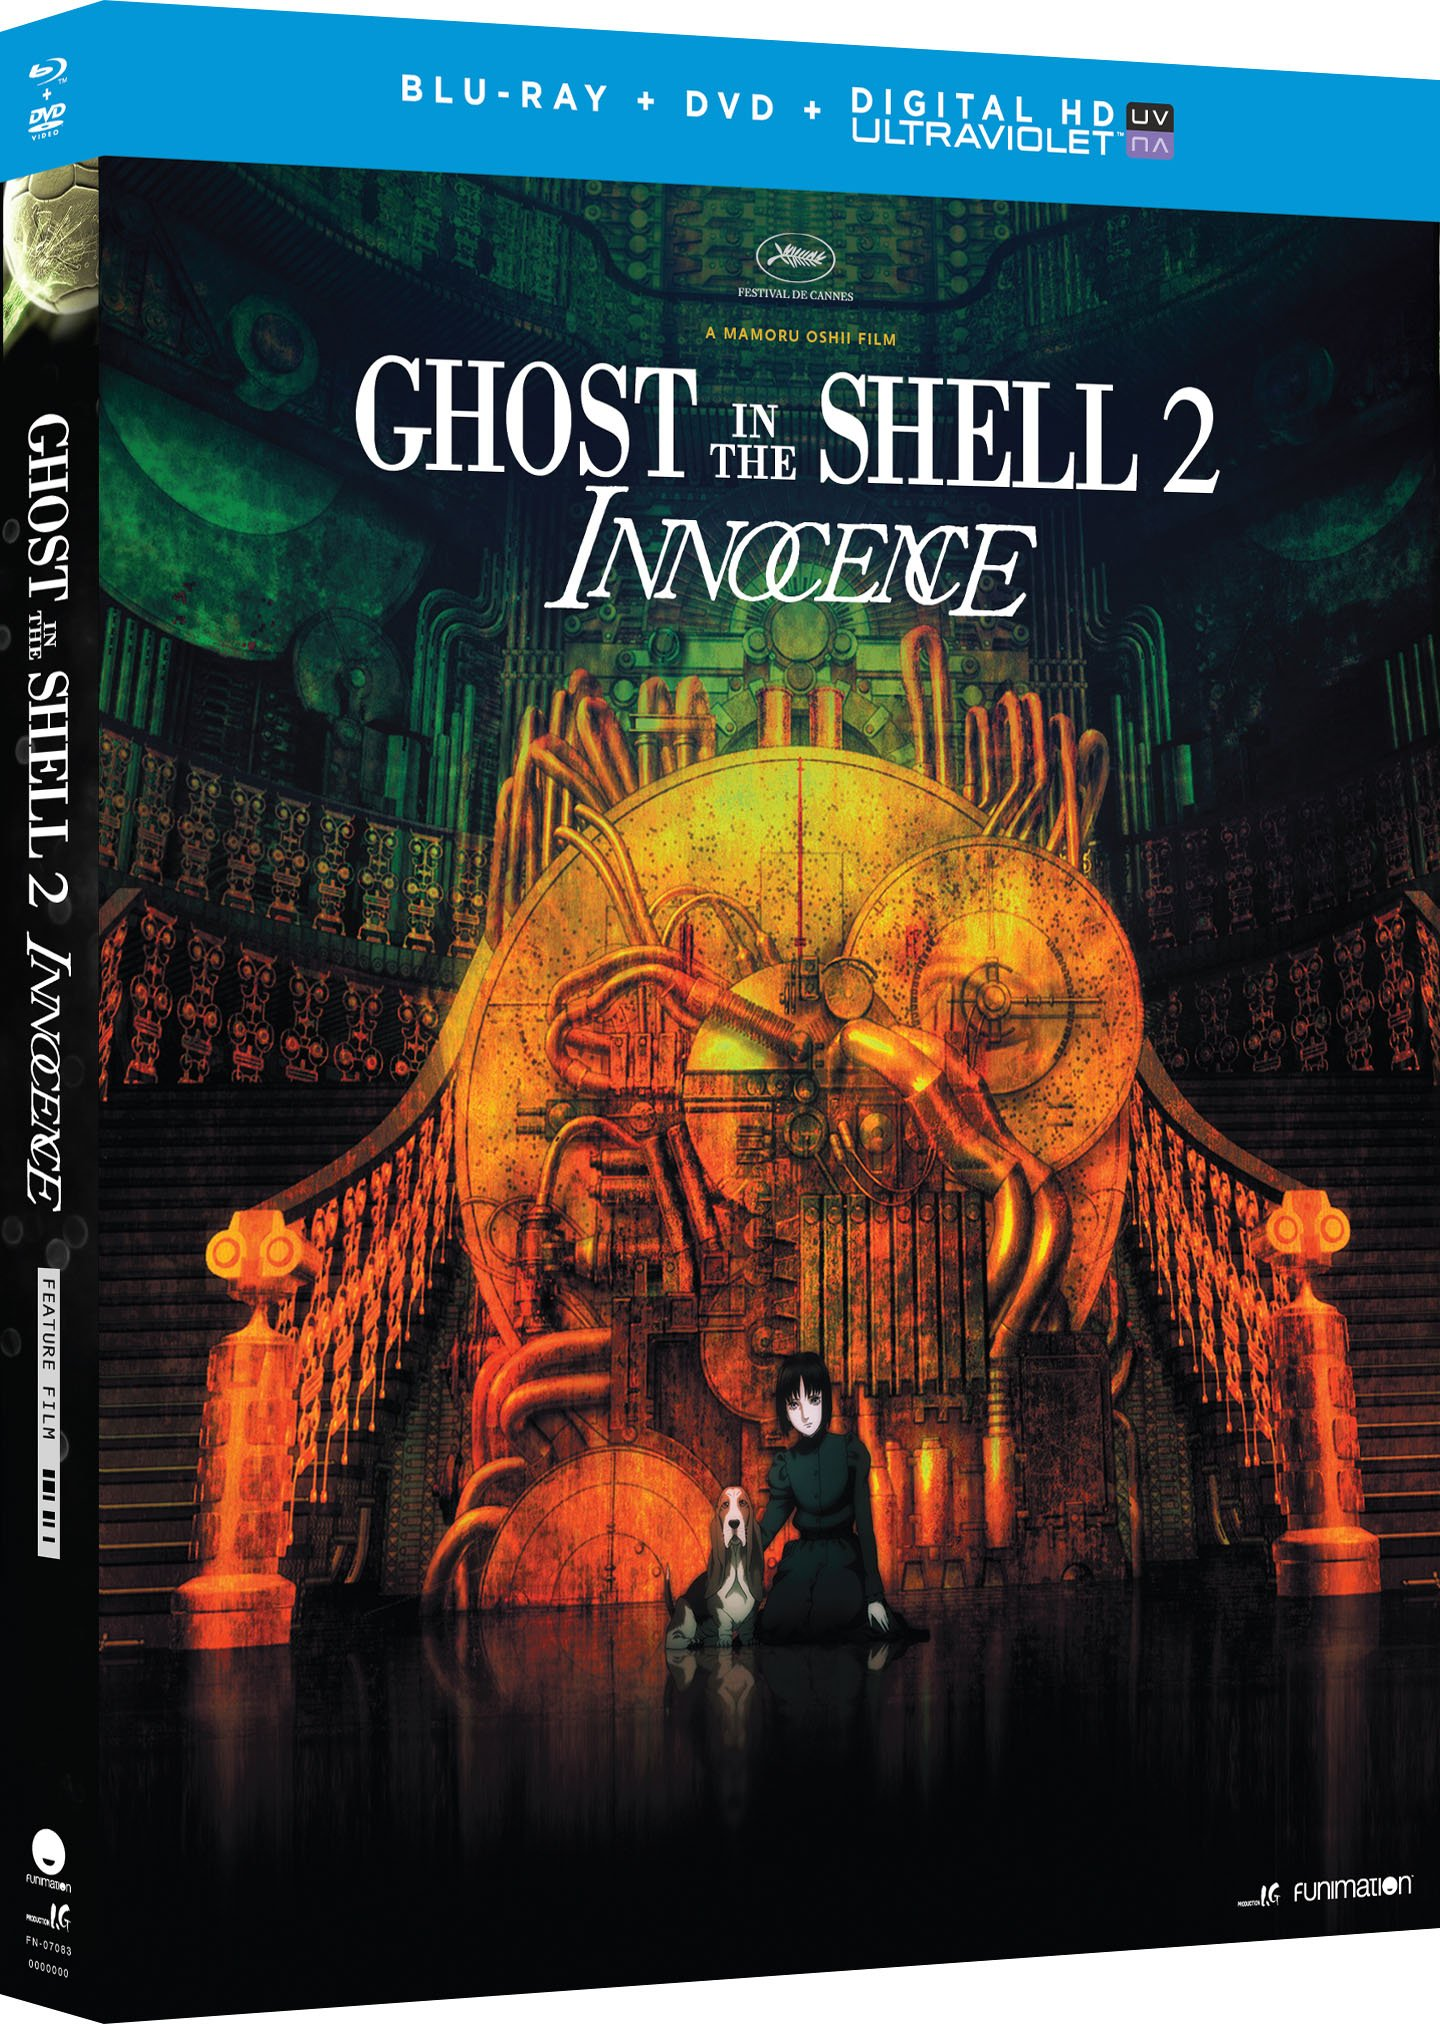 Blu-ray : Ghost In The Shell 2: Innocence (With DVD, Ultraviolet Digital Copy, 2 Disc)